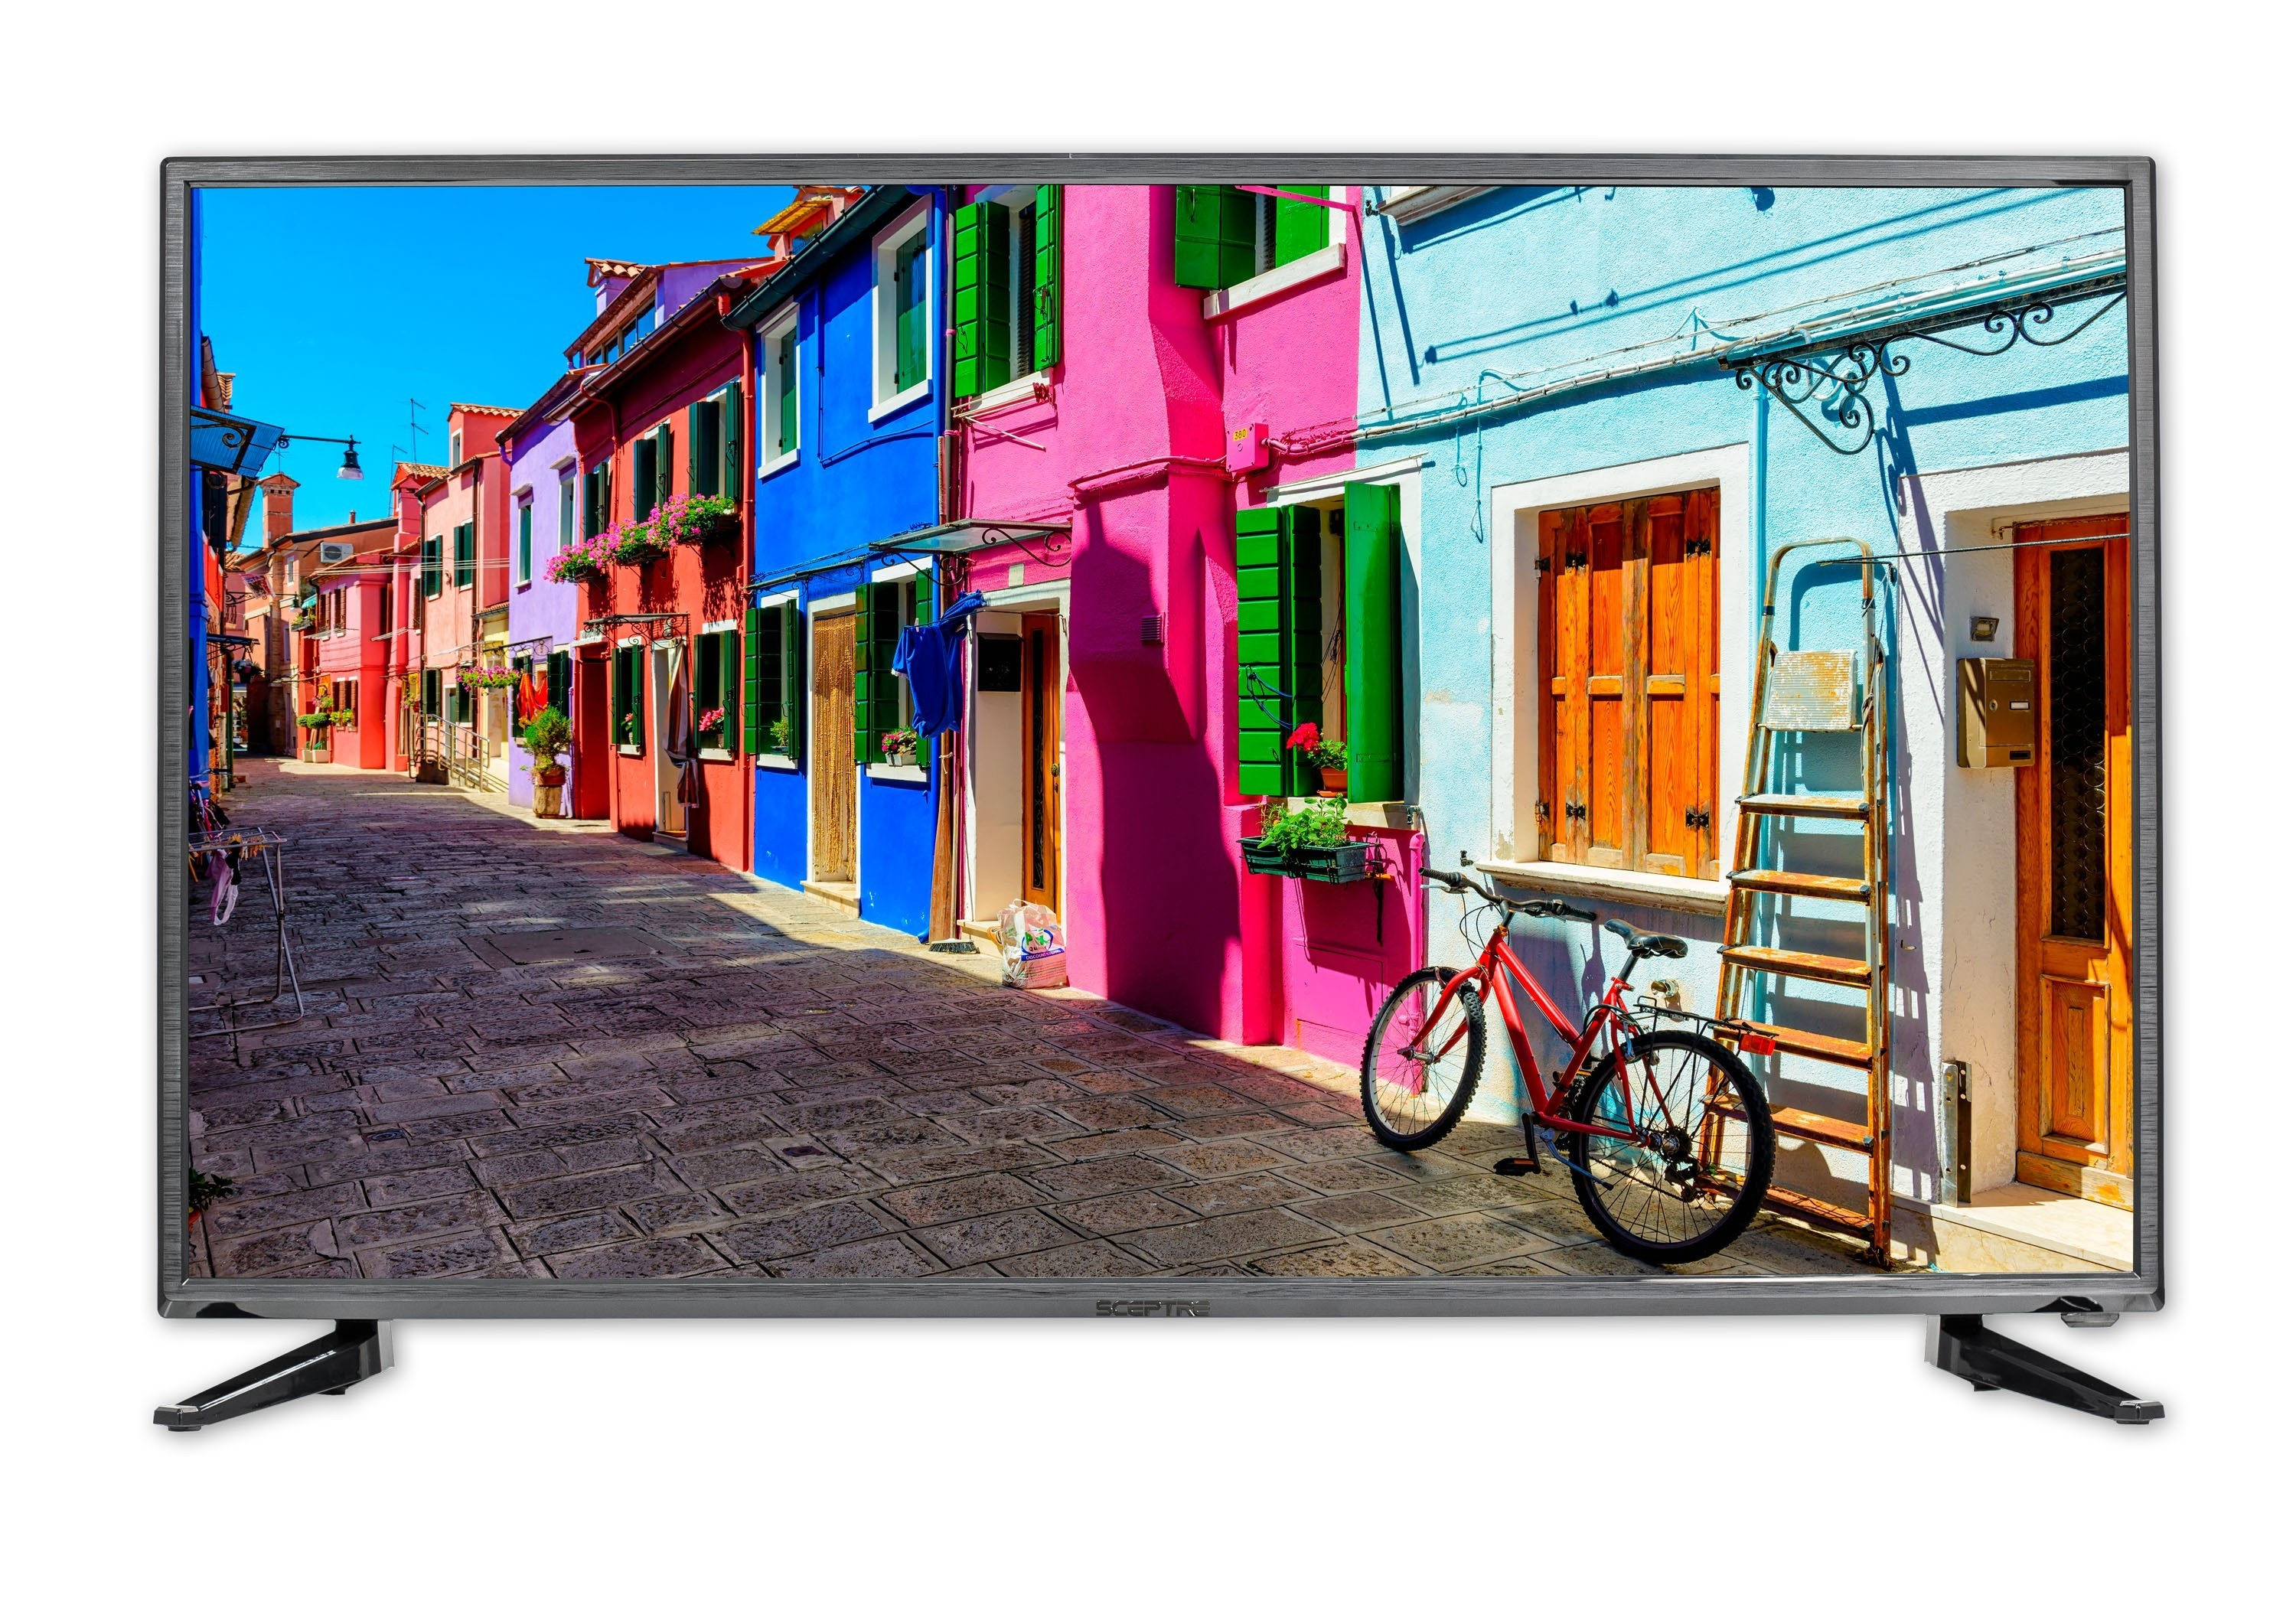 The TV with a brightly colored street scene on the screen